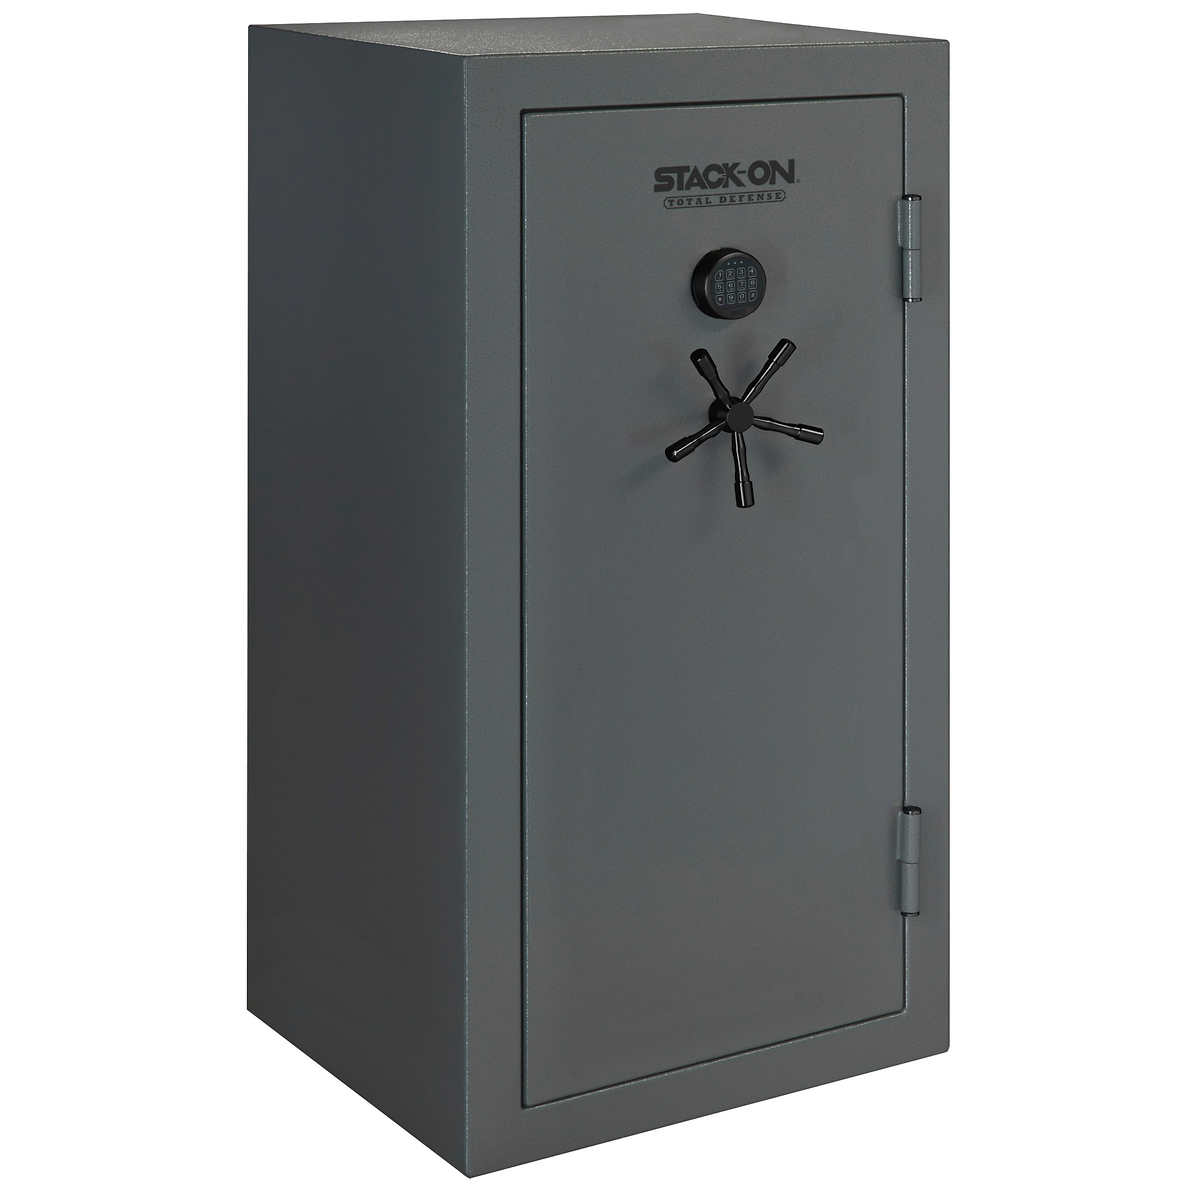 Stack On Total Defense 40 Gun Fire/Waterproof Safe